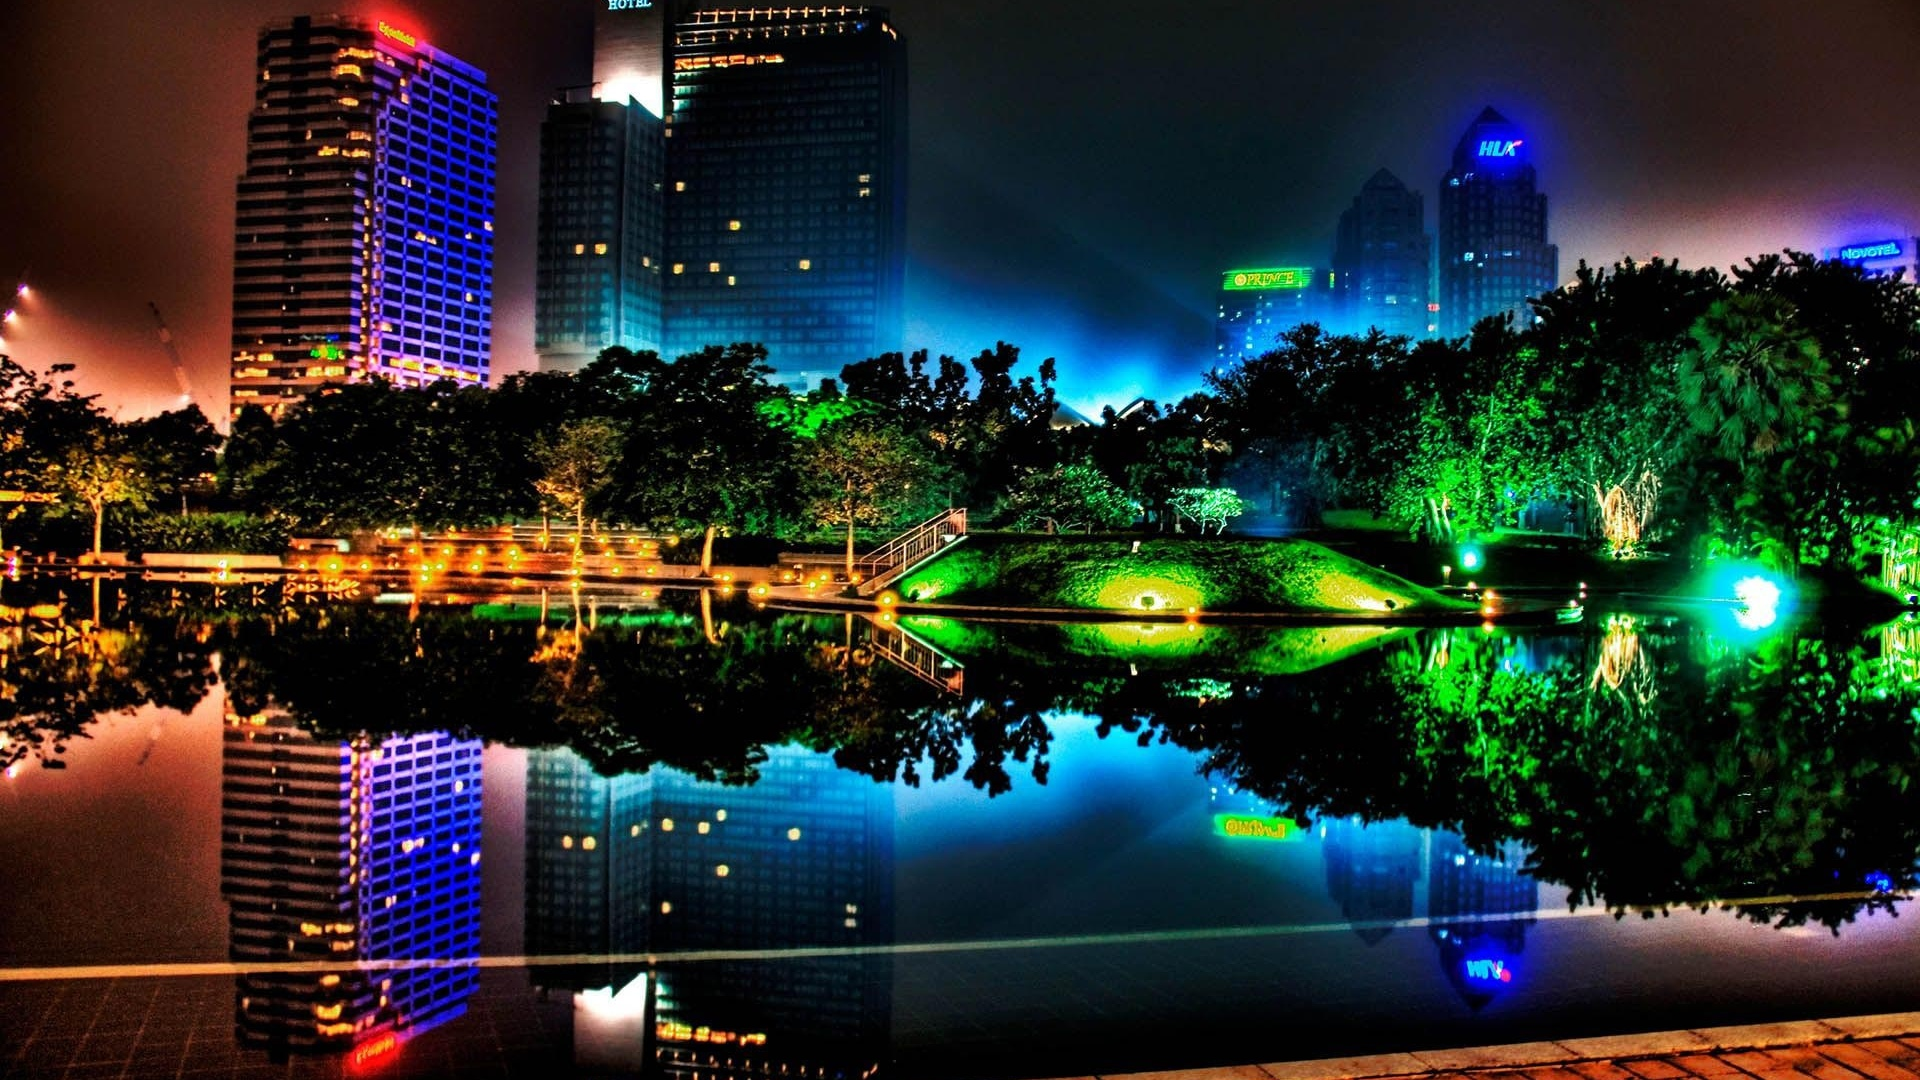 Beautiful night city, buildings, pond, lights, trees, park 1920x1080 wallpaper